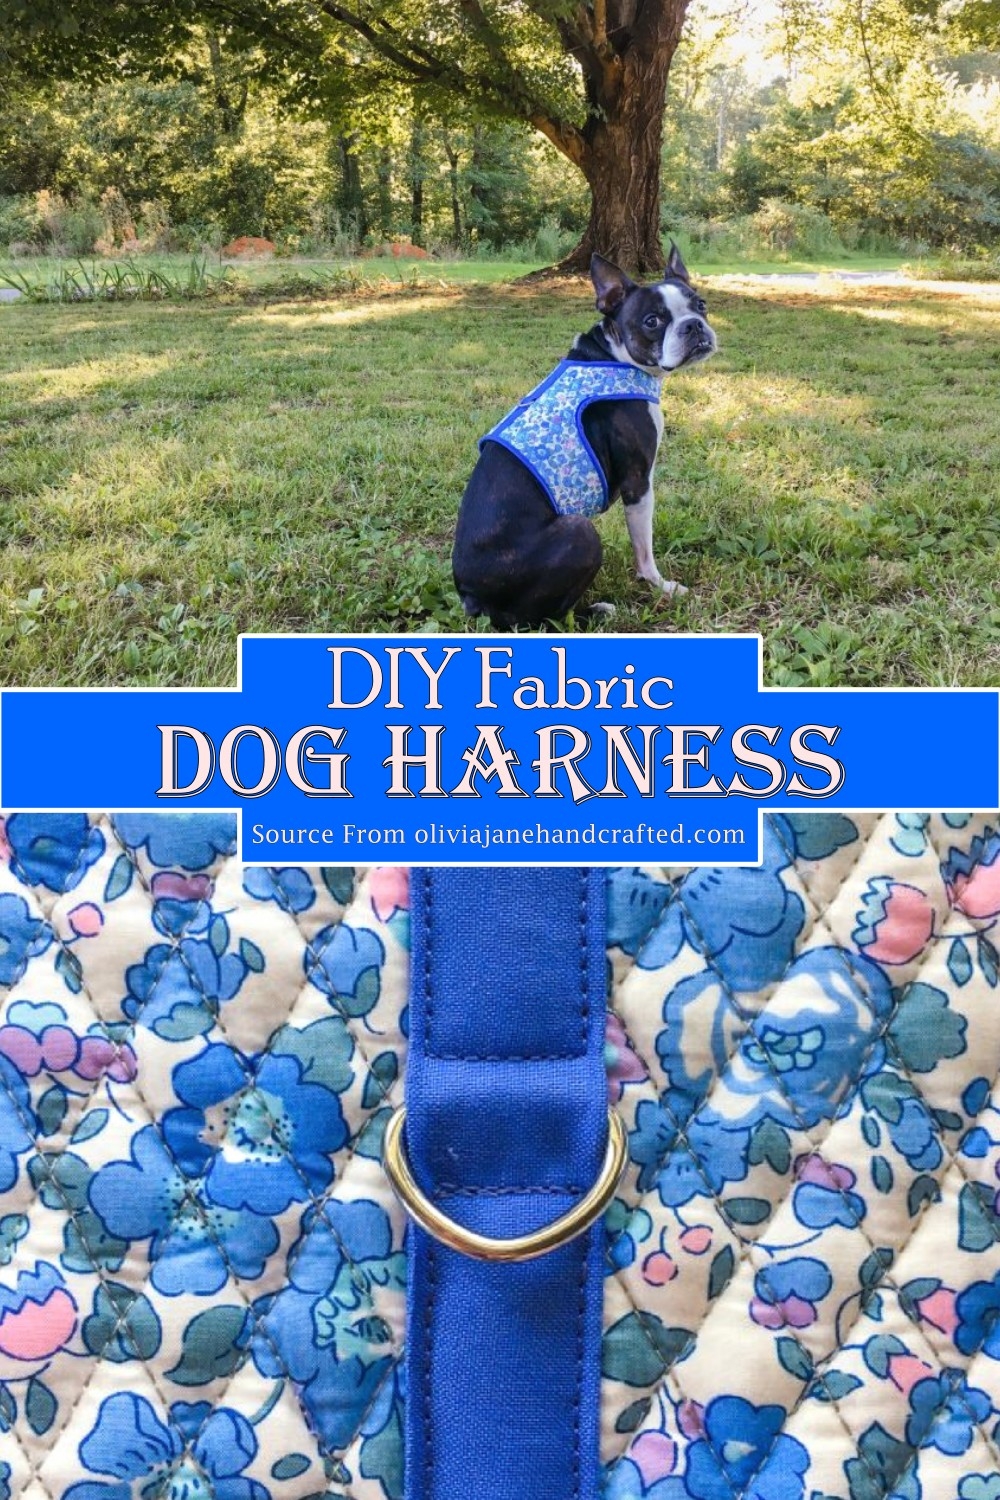 Fabric Harness for your pooch